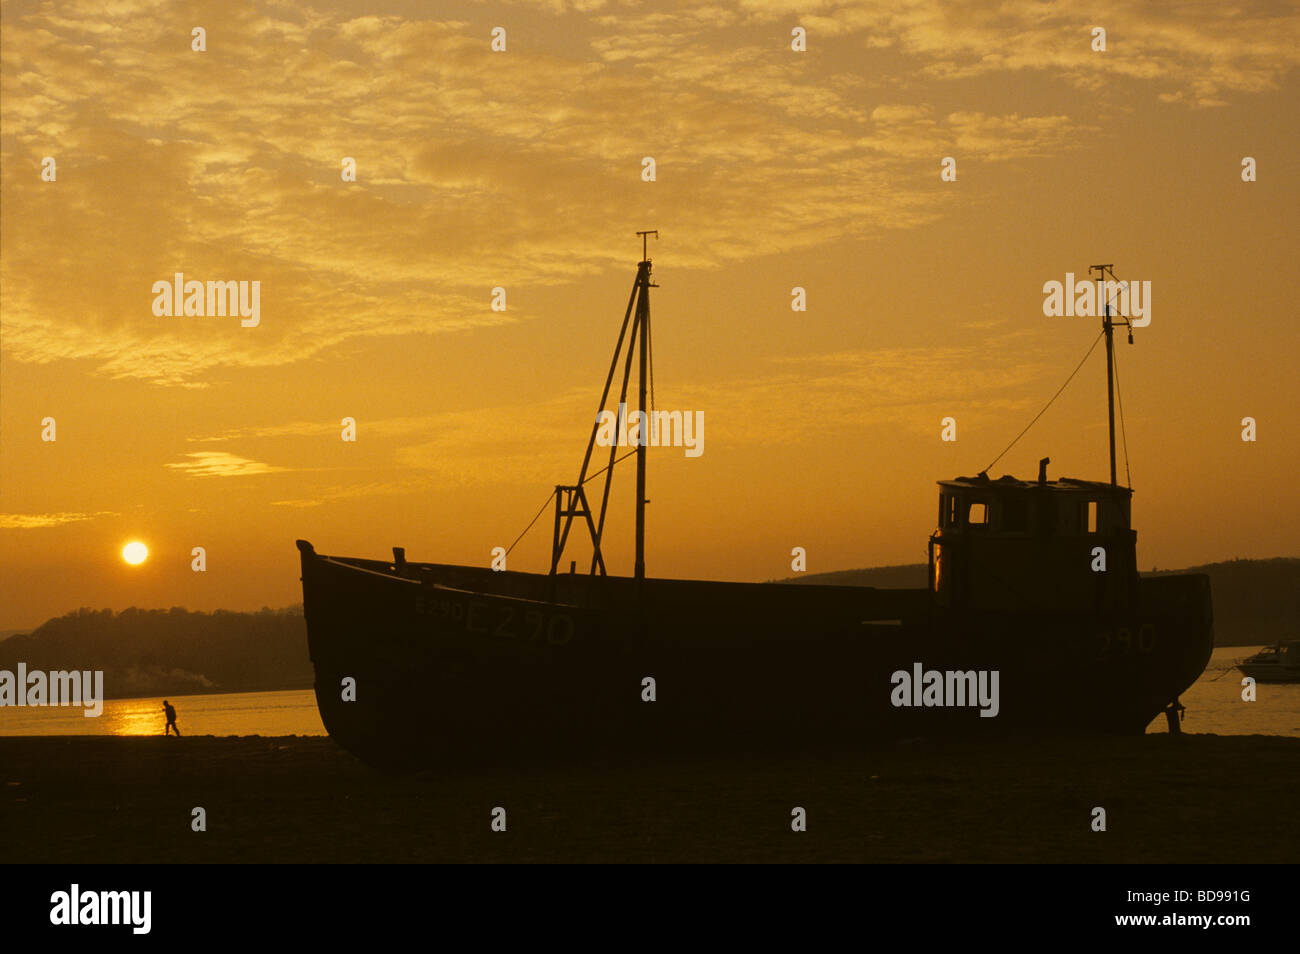 A beached fishing boat at sunset on the Exe estuary, Dawlish Warren, Devon, England - Stock Image